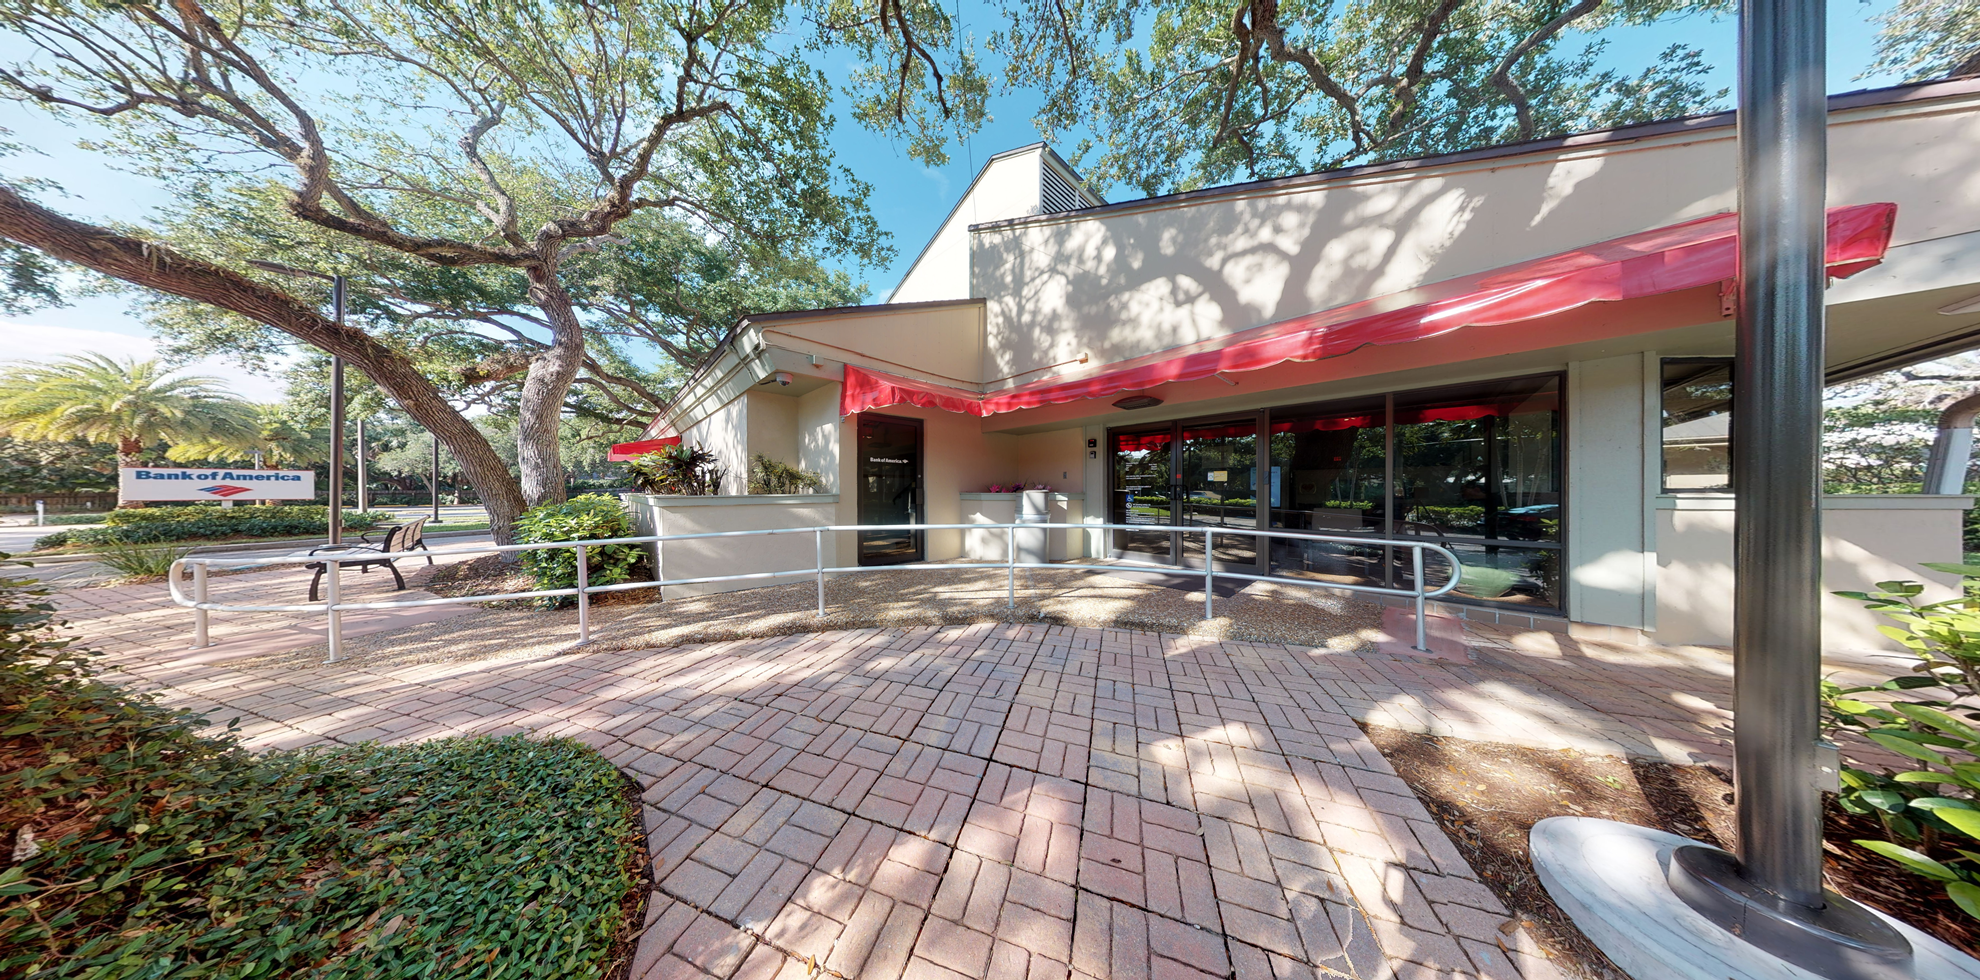 Bank of America financial center with walk-up ATM   6300 Highway A1A, Indian River Shores, FL 32963